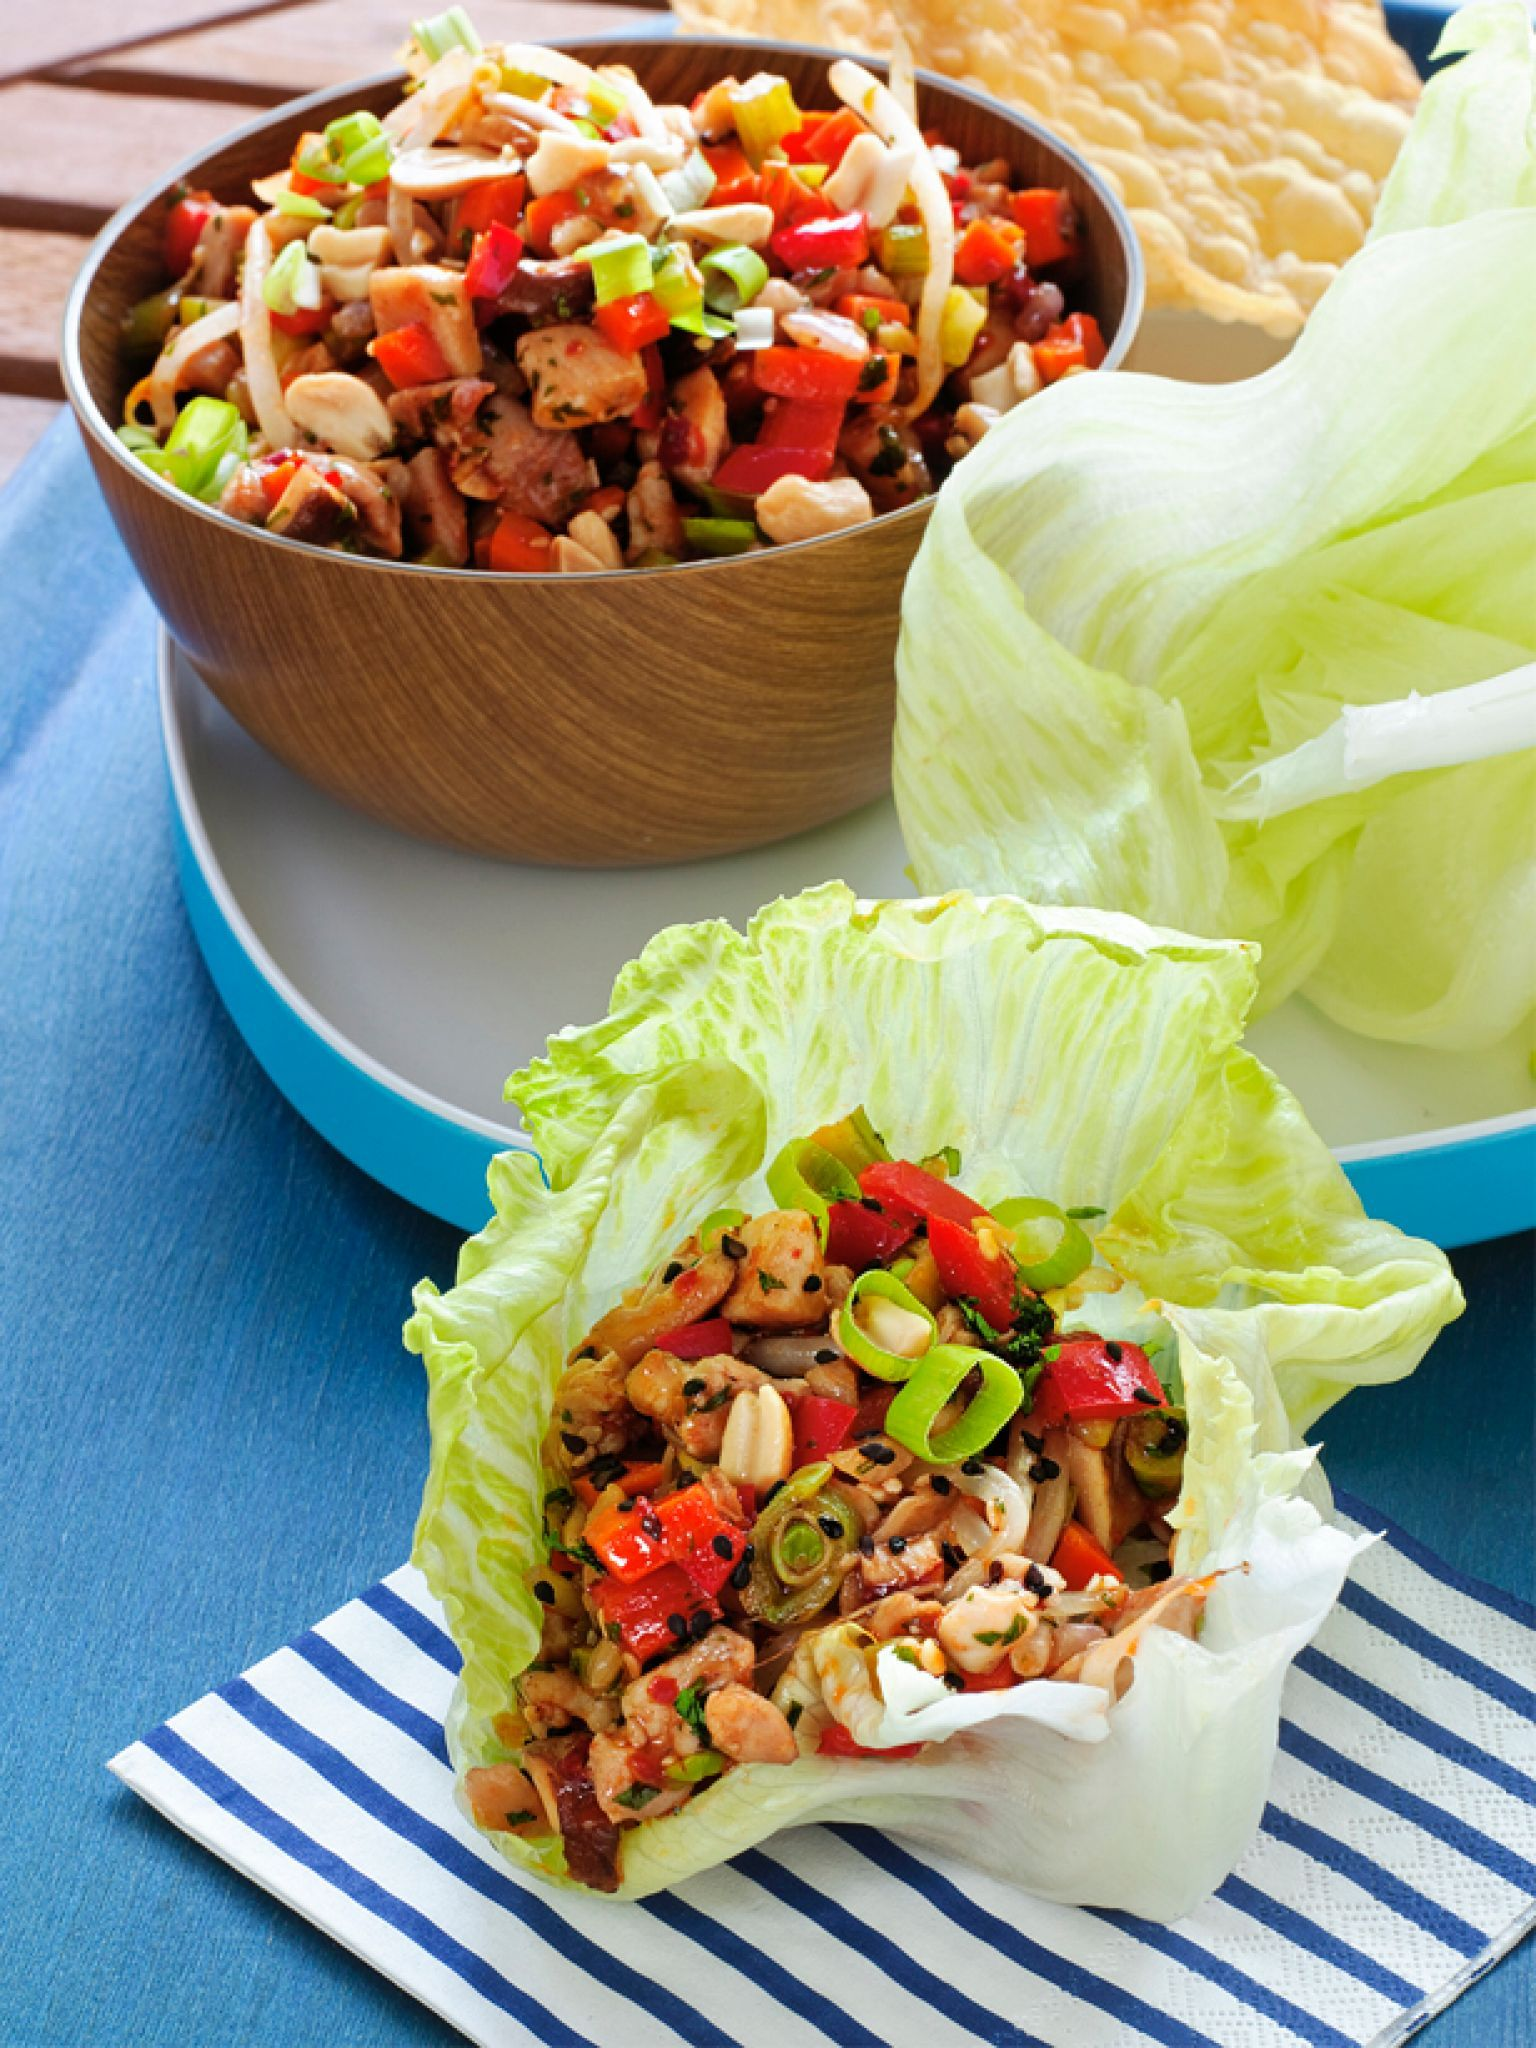 Guy fieris top recipes chicken lettuce cups lettuce cups and guy food network invites you to try this asian chicken lettuce cups recipe from guy fieri forumfinder Images